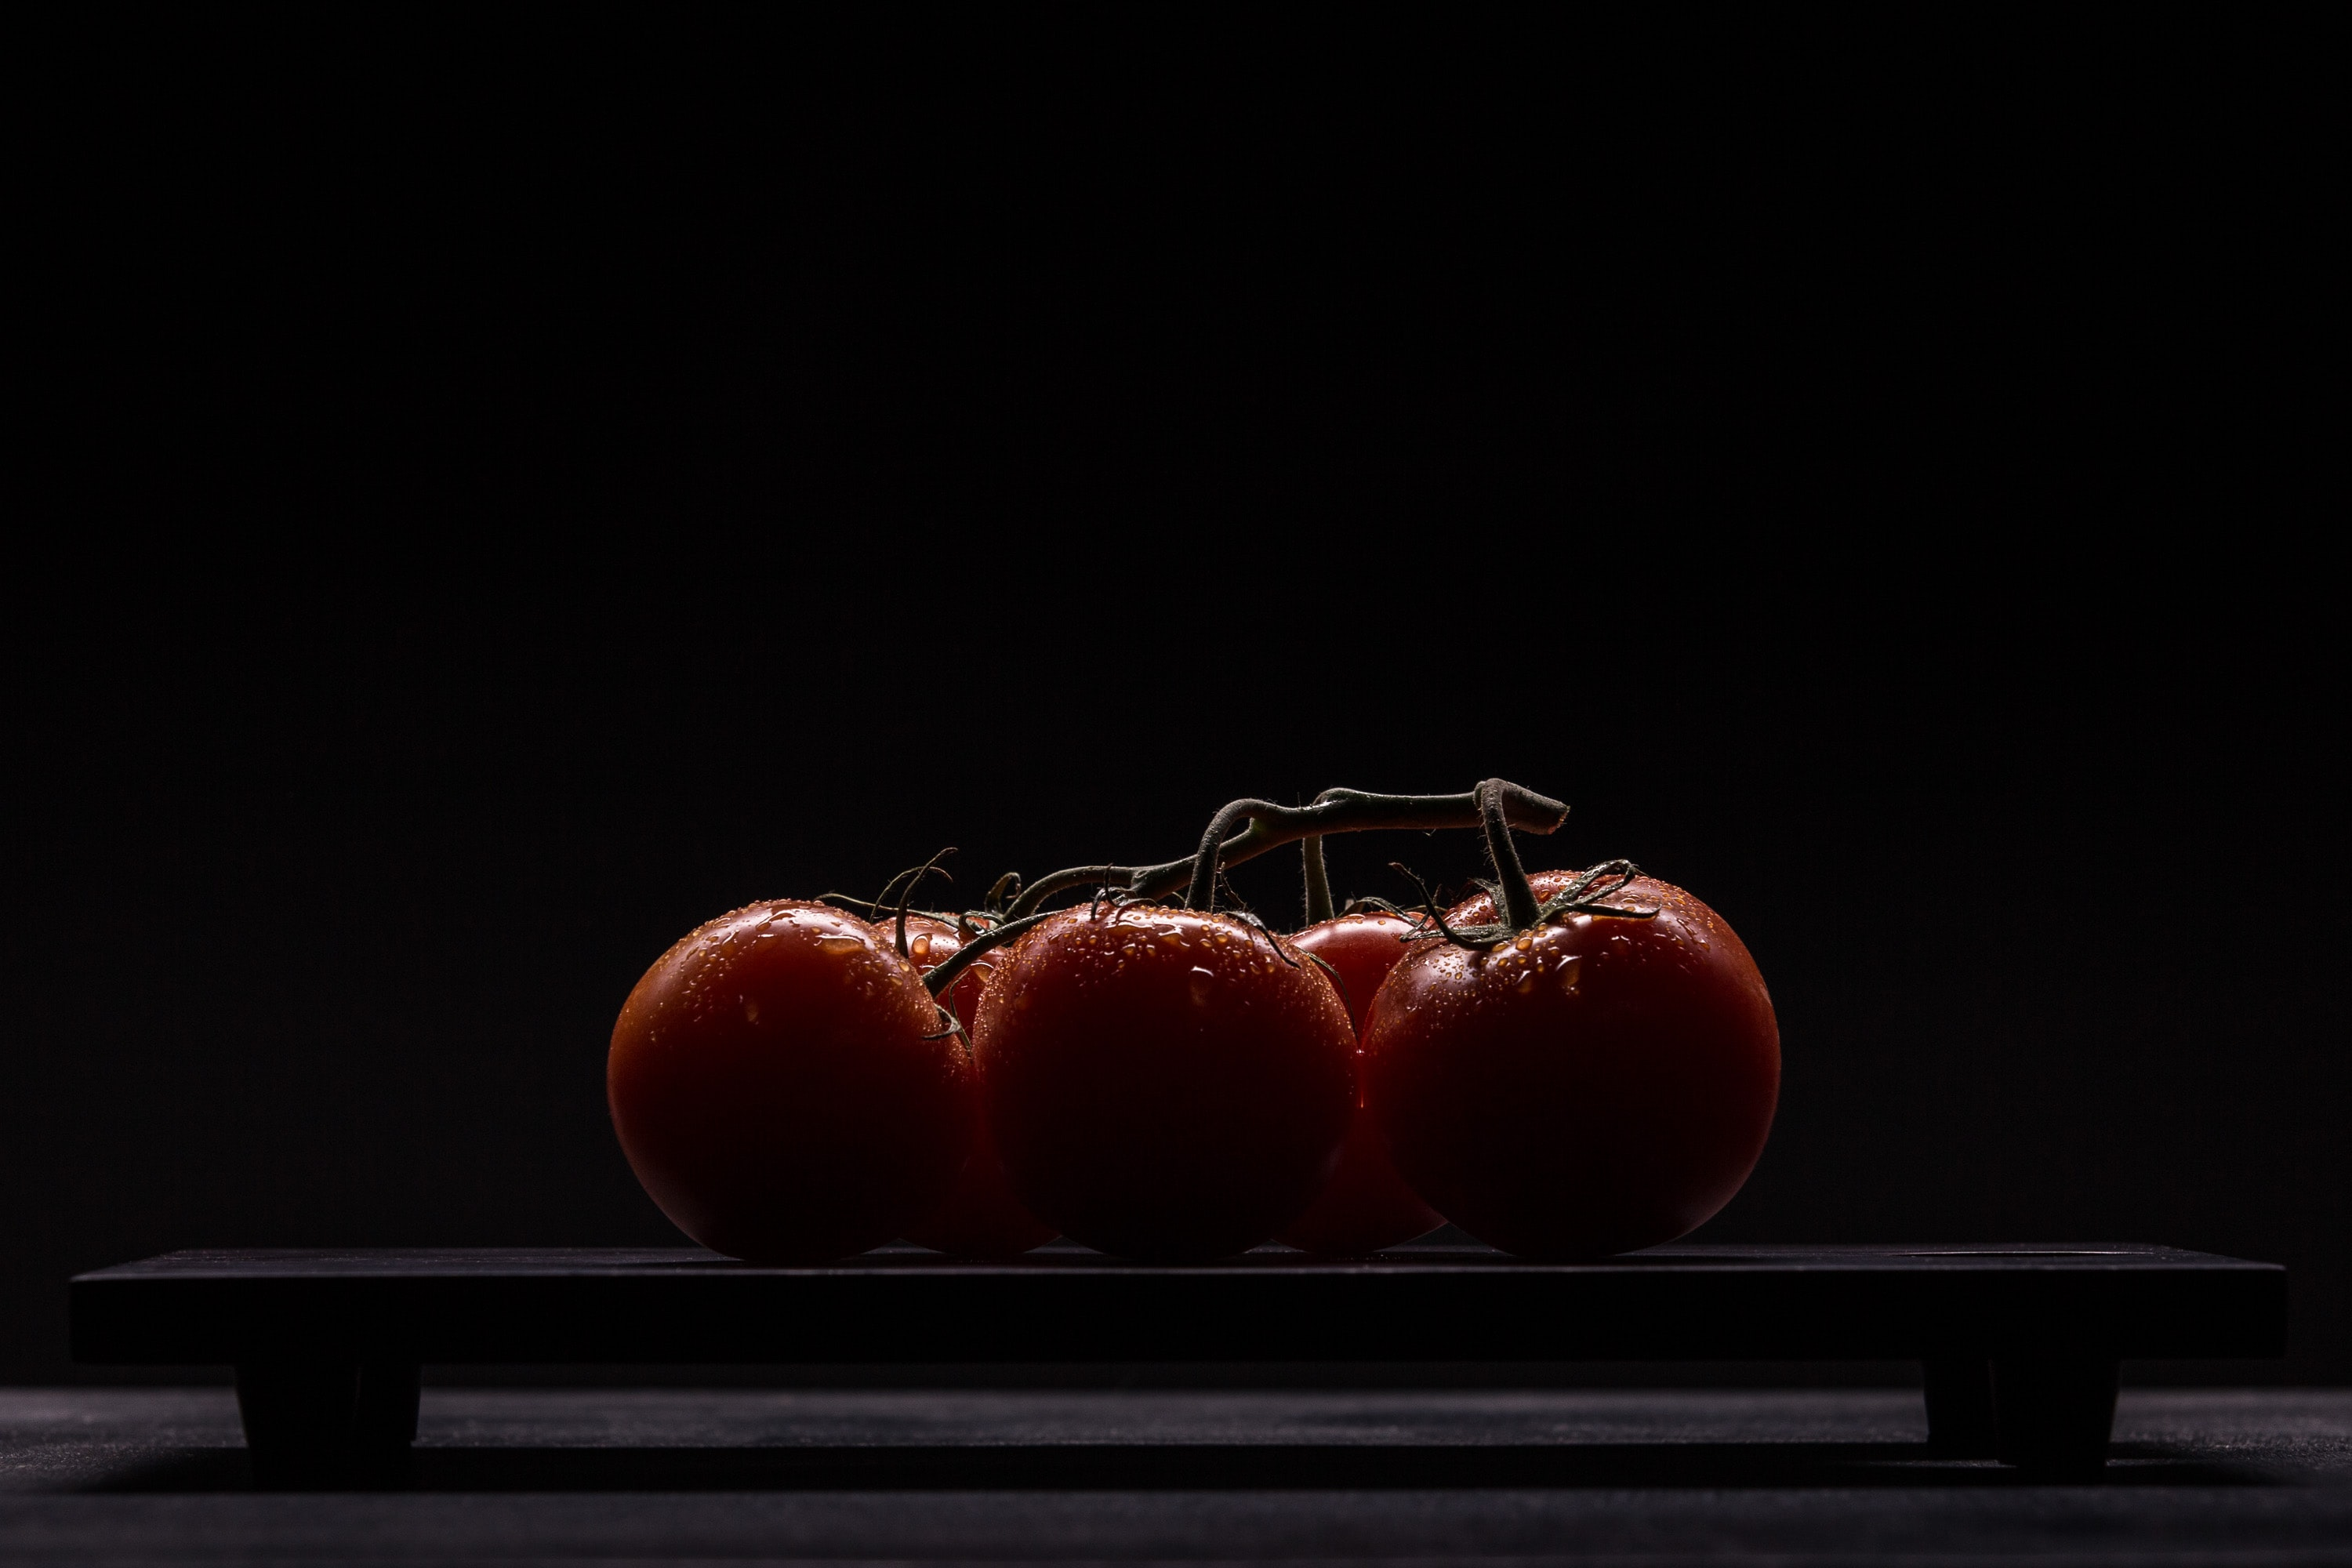 red tomatoes on black surface